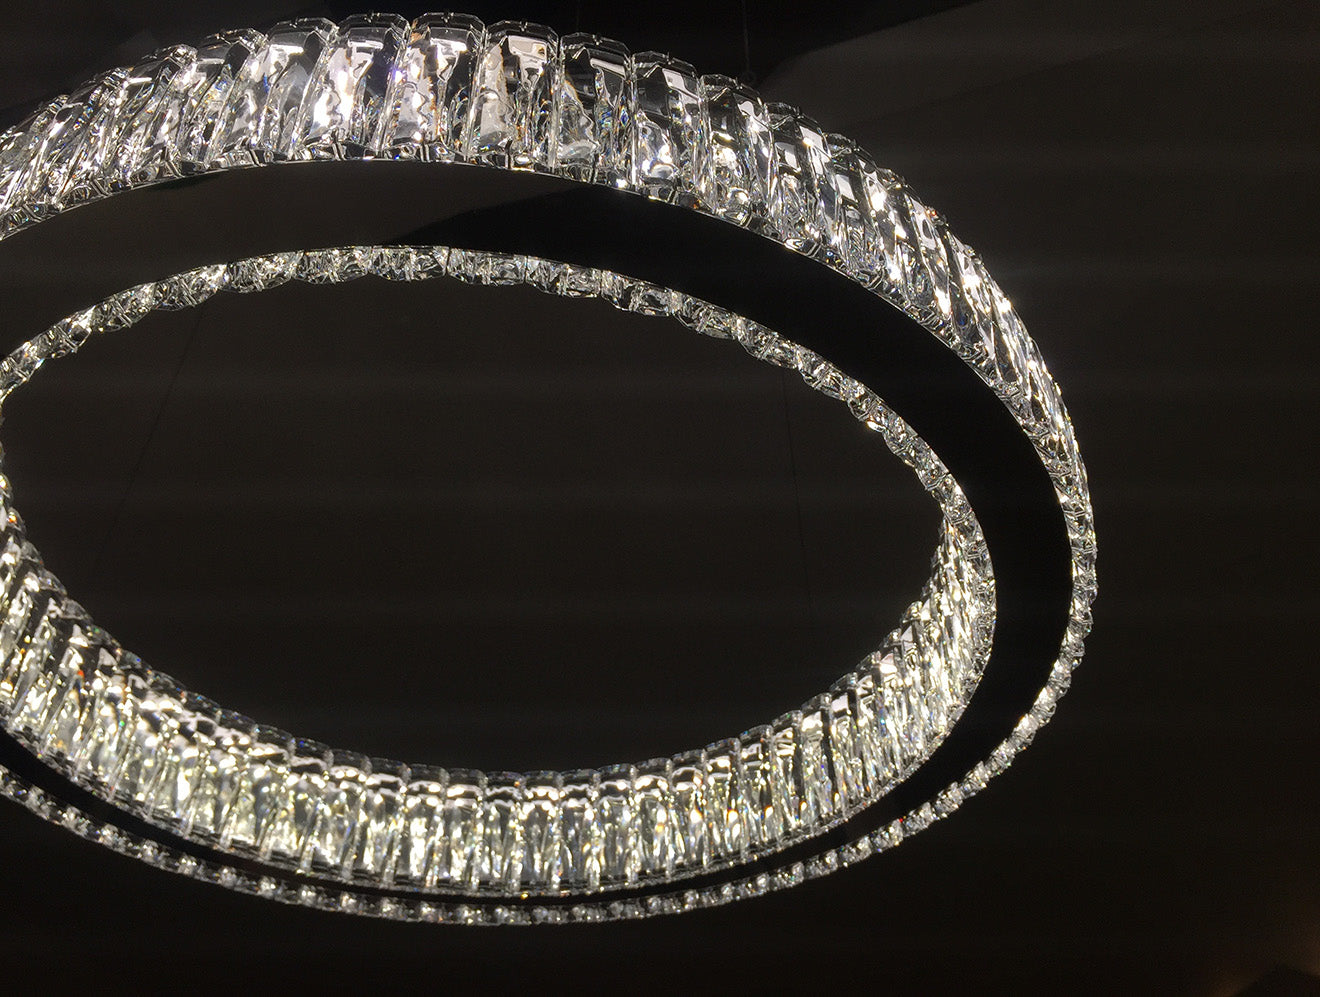 Swarovski Helios Chandelier by Fredrikson Stallard Glacarium Collection